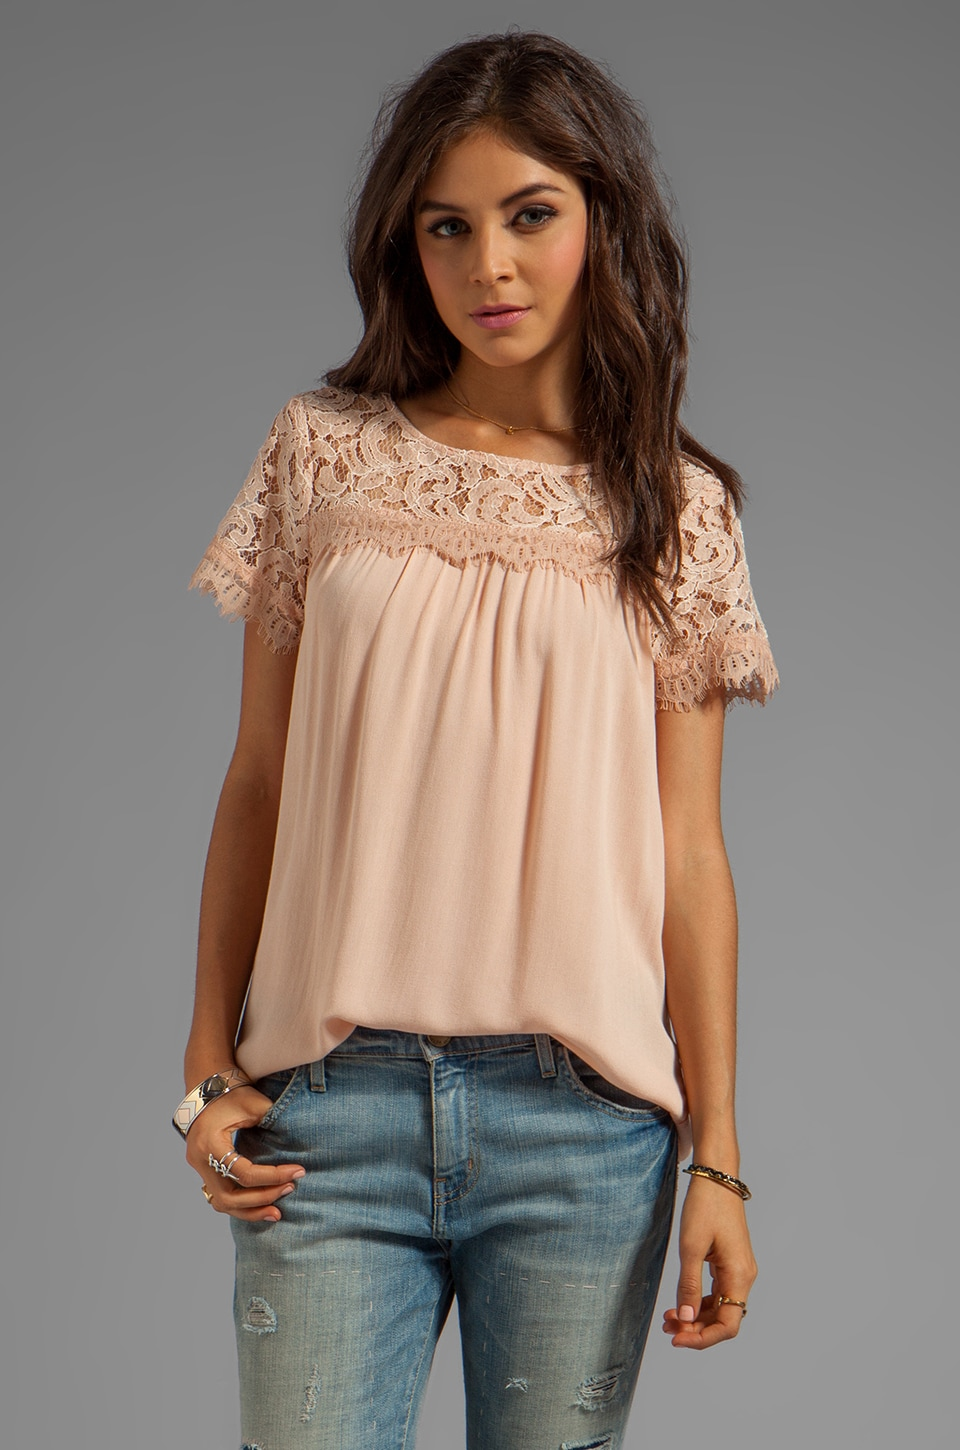 Ella Moss Victoria Short Sleeve Top in Blush